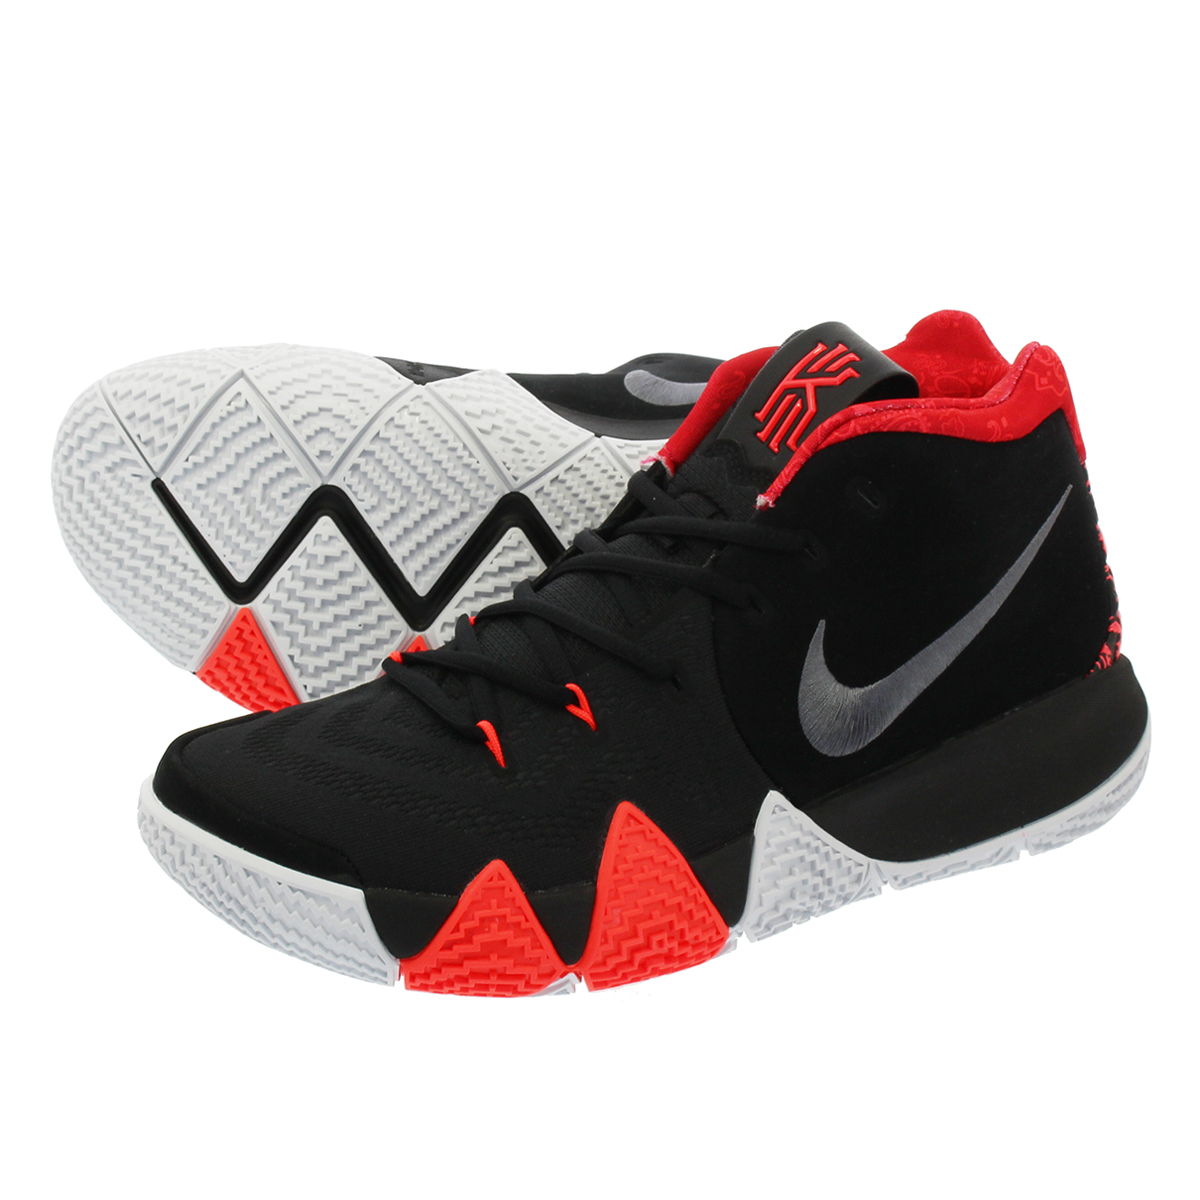 quality design c846d d61ab NIKE KYRIE 4 Nike chi Lee 4 BLACK/UNIVERSITY RED/TOUR YELLOW/DARK GREY